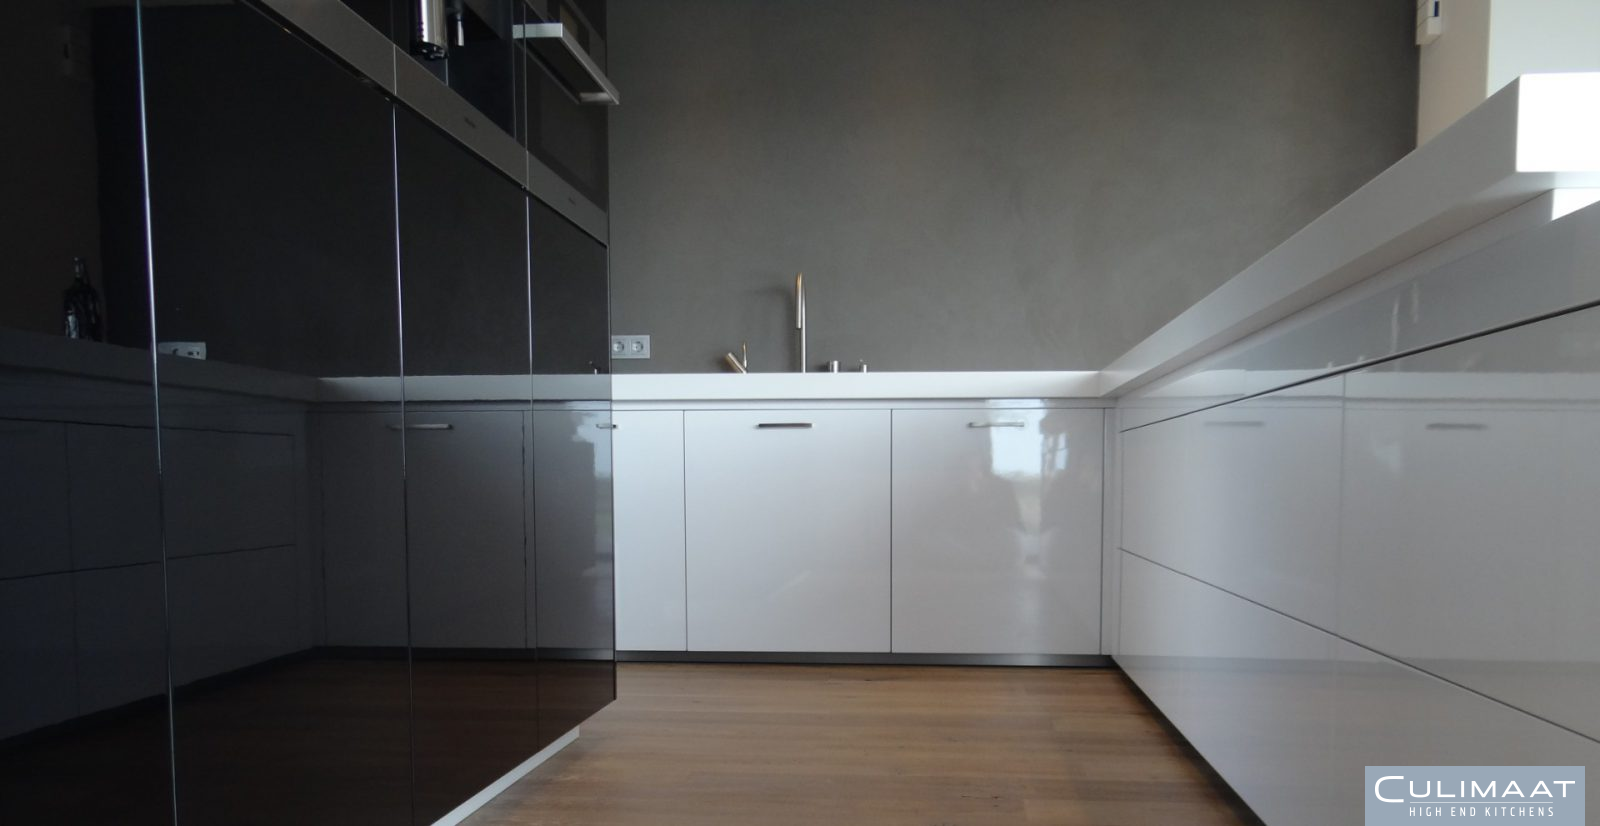 Yerseke culimaat high end kitchens